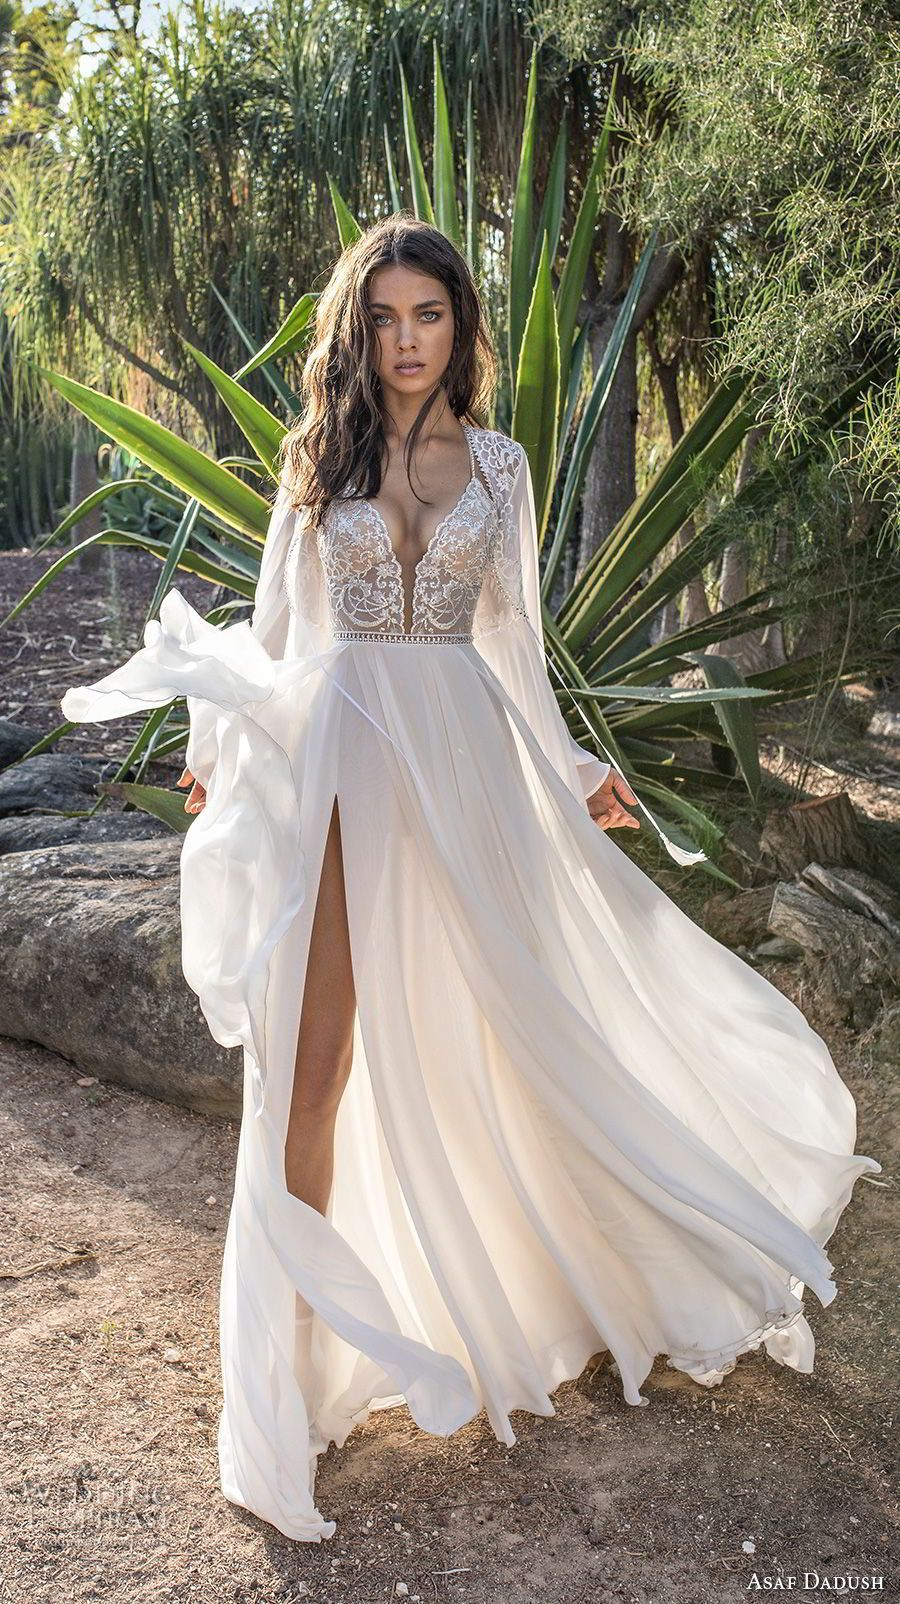 Asaf dadush bridal long sleeves deep plunging sweetheart